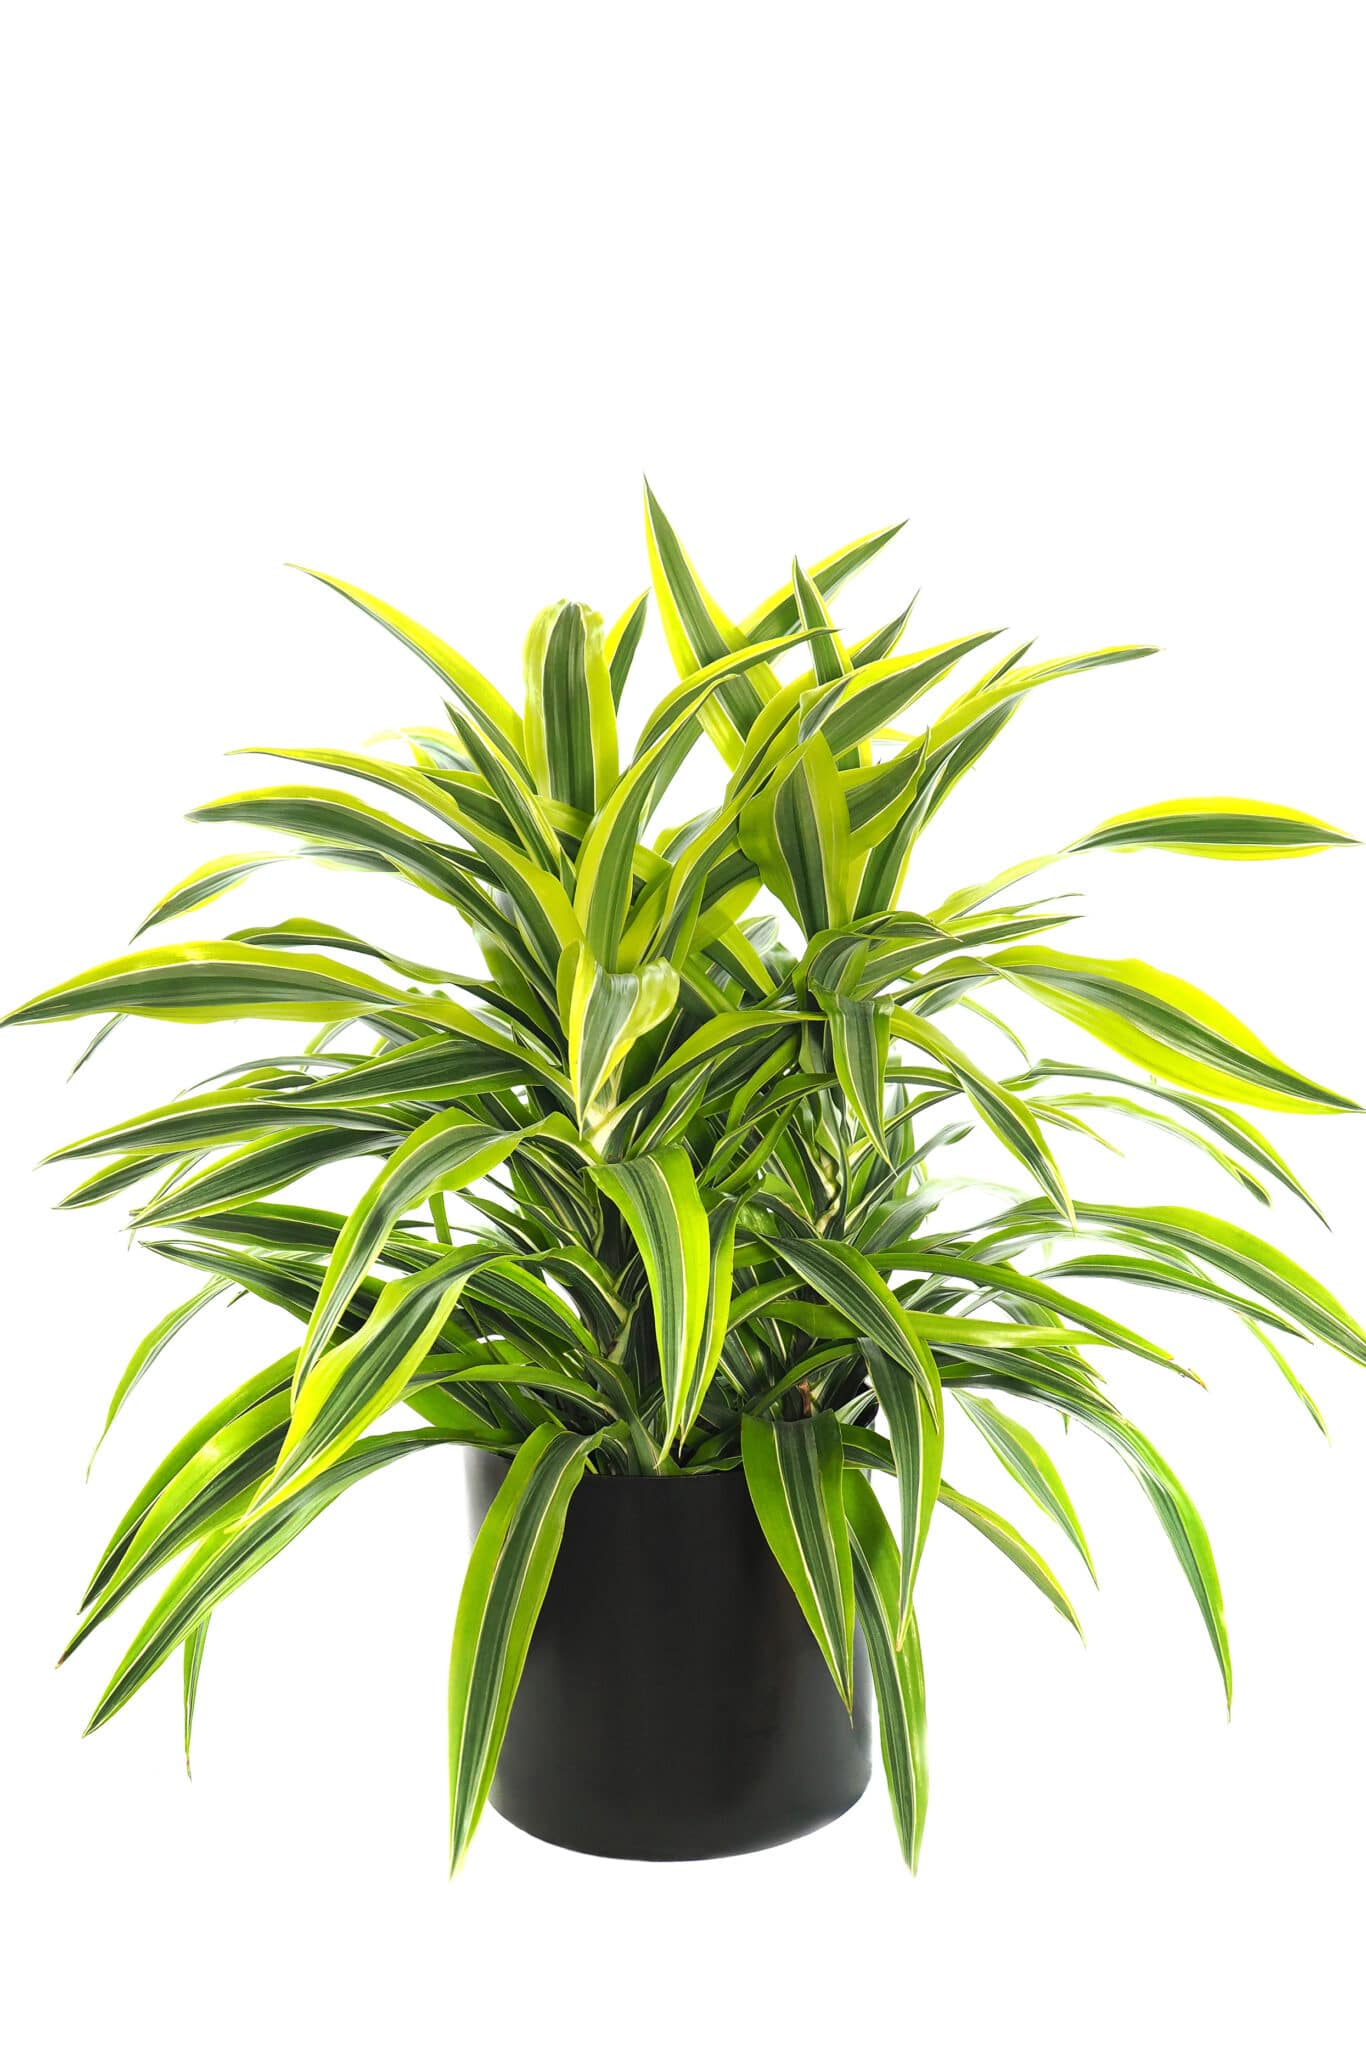 A dracaena in a pot.